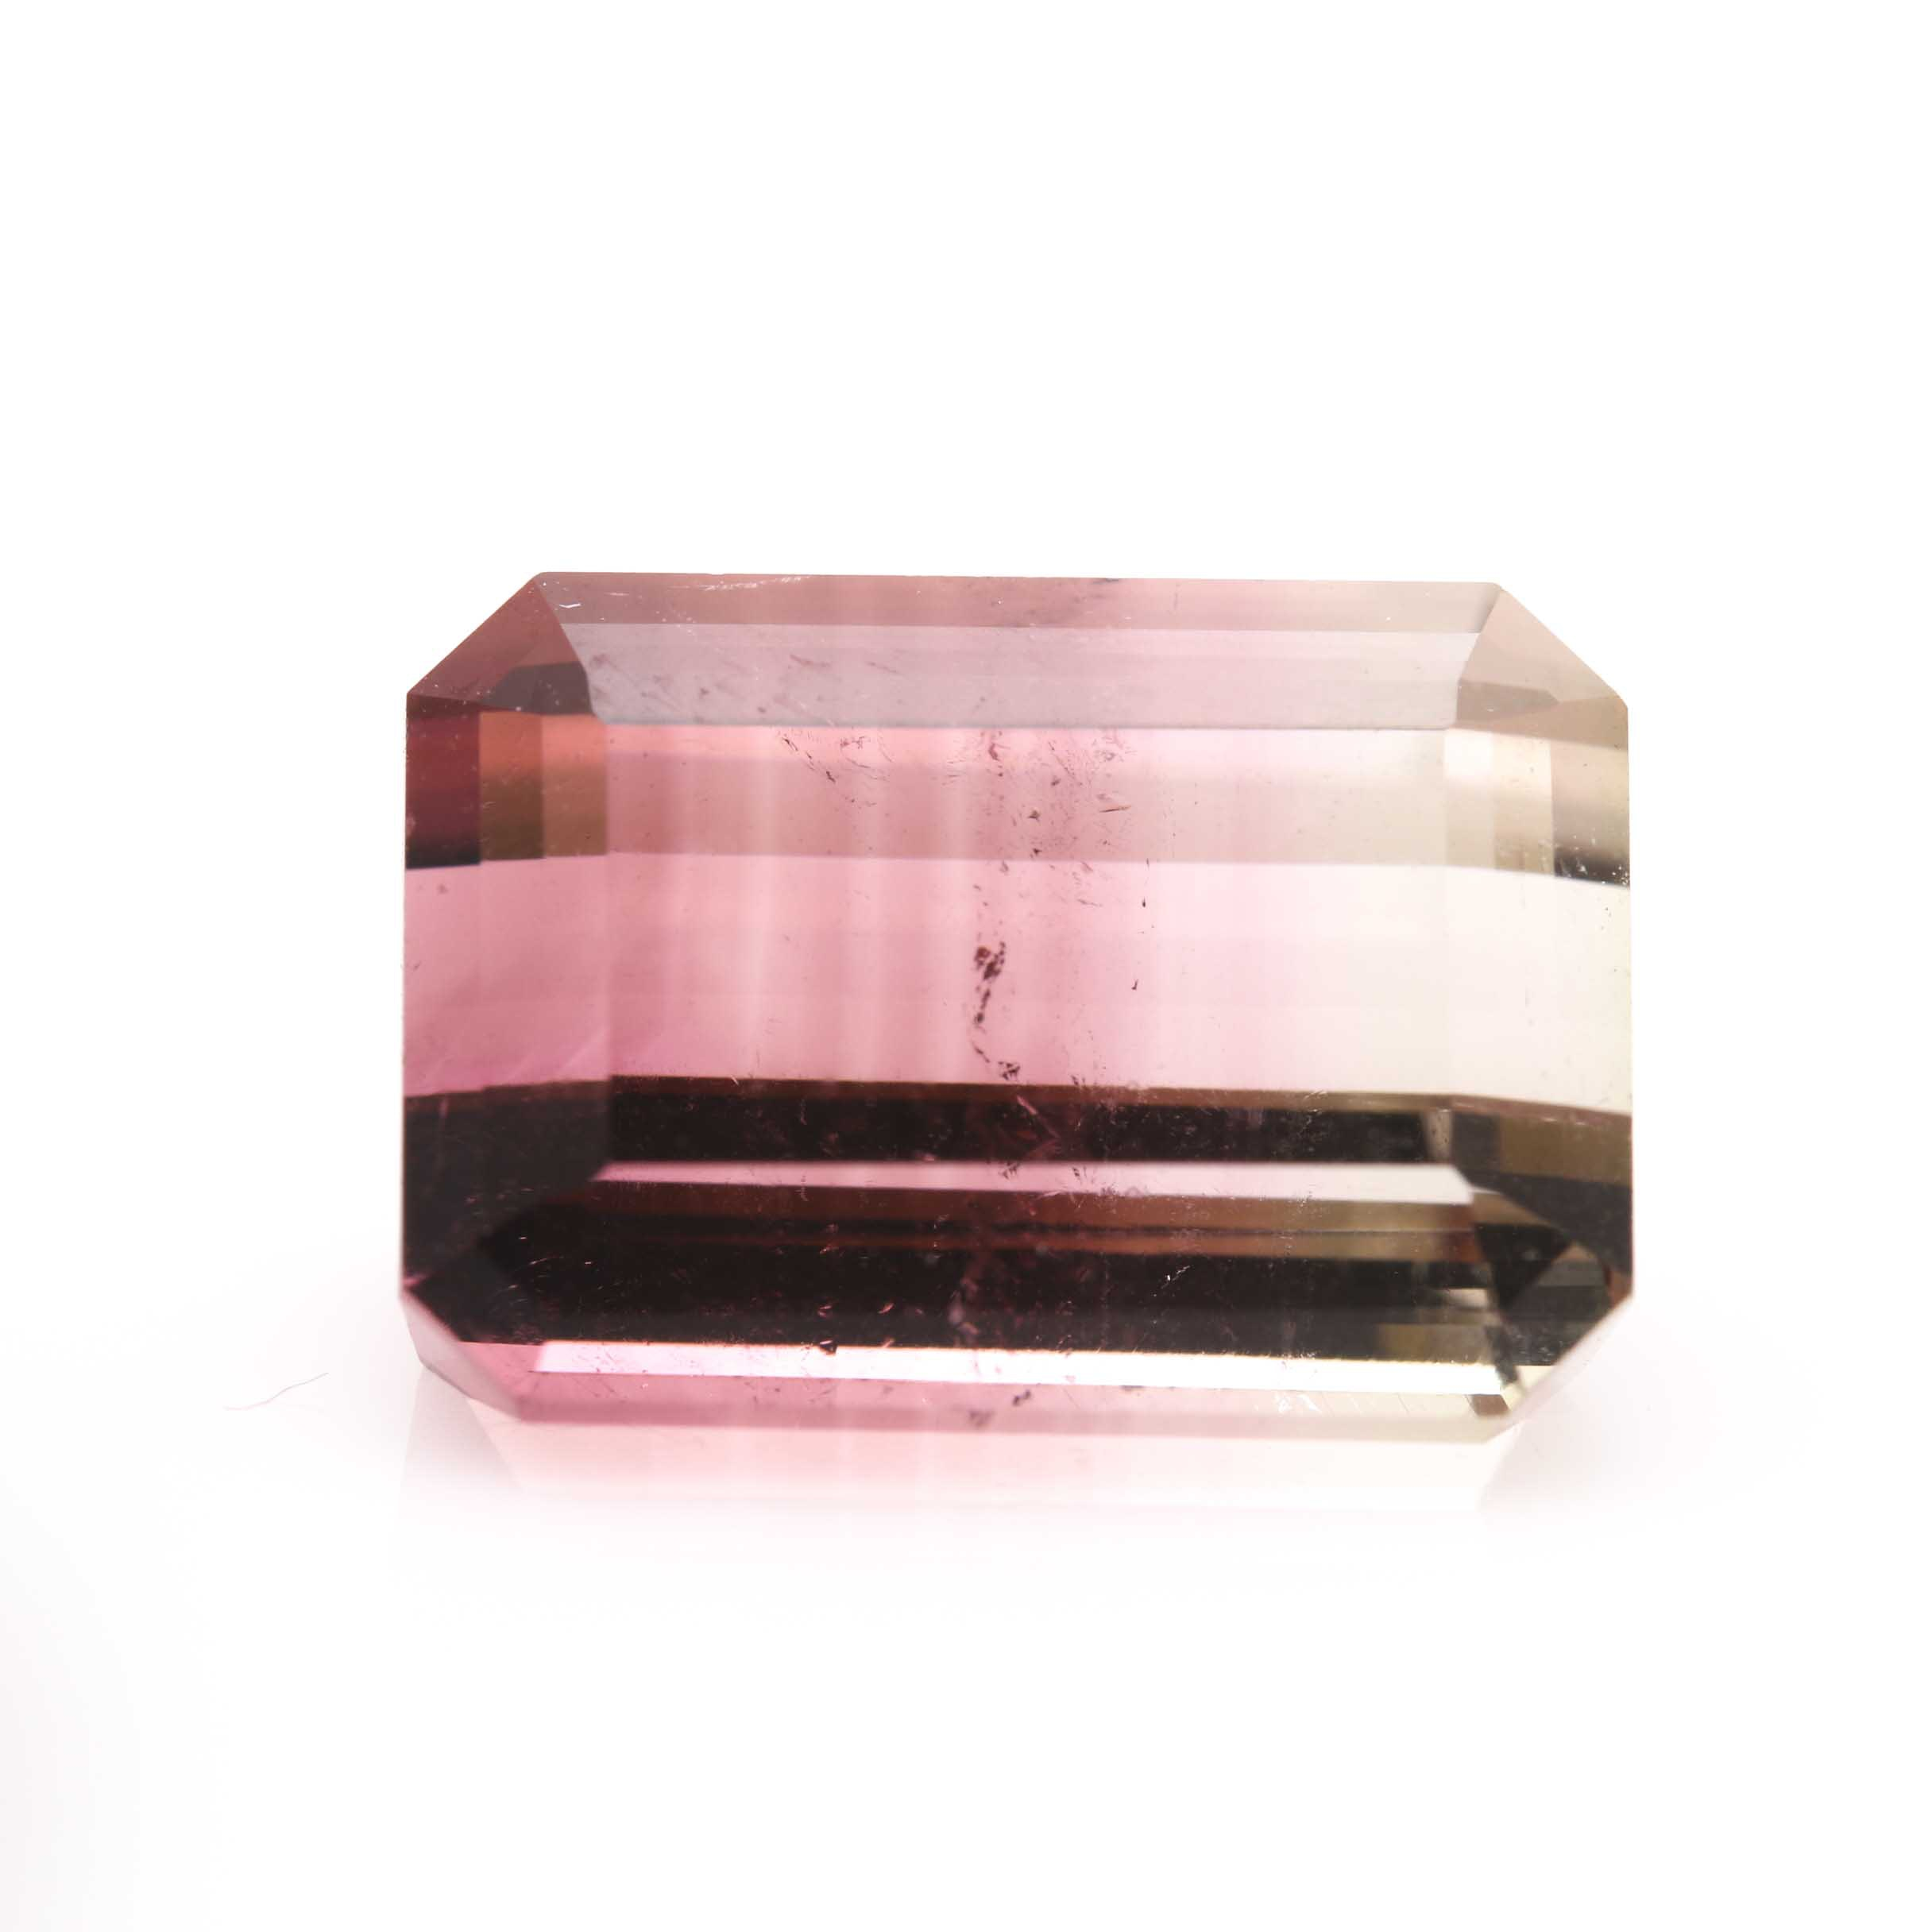 5.23 CTS Bi-Color Tourmaline